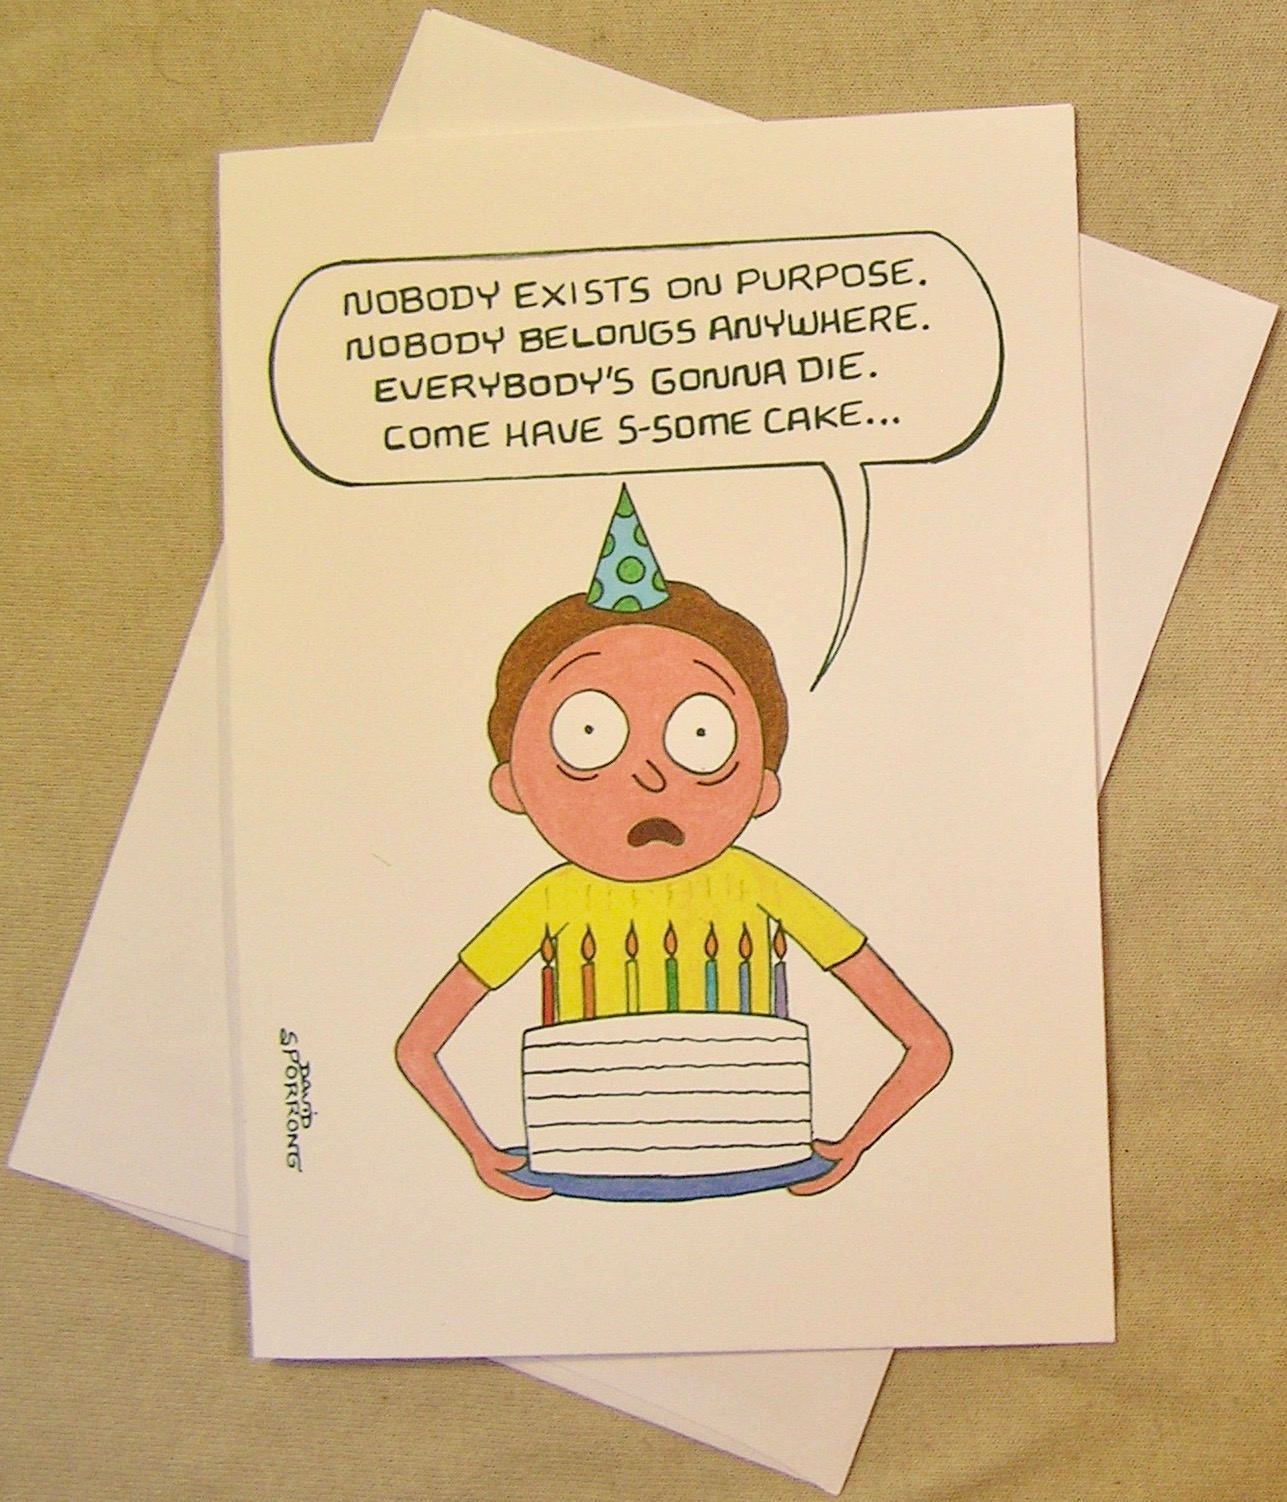 Rick And Morty Birthday Card Morty S Birthday Wisdom Regular Size Card And Mini Version A Lunar Eclipse Cartoon Birthday Card By Birthday Cards Cards Etsy